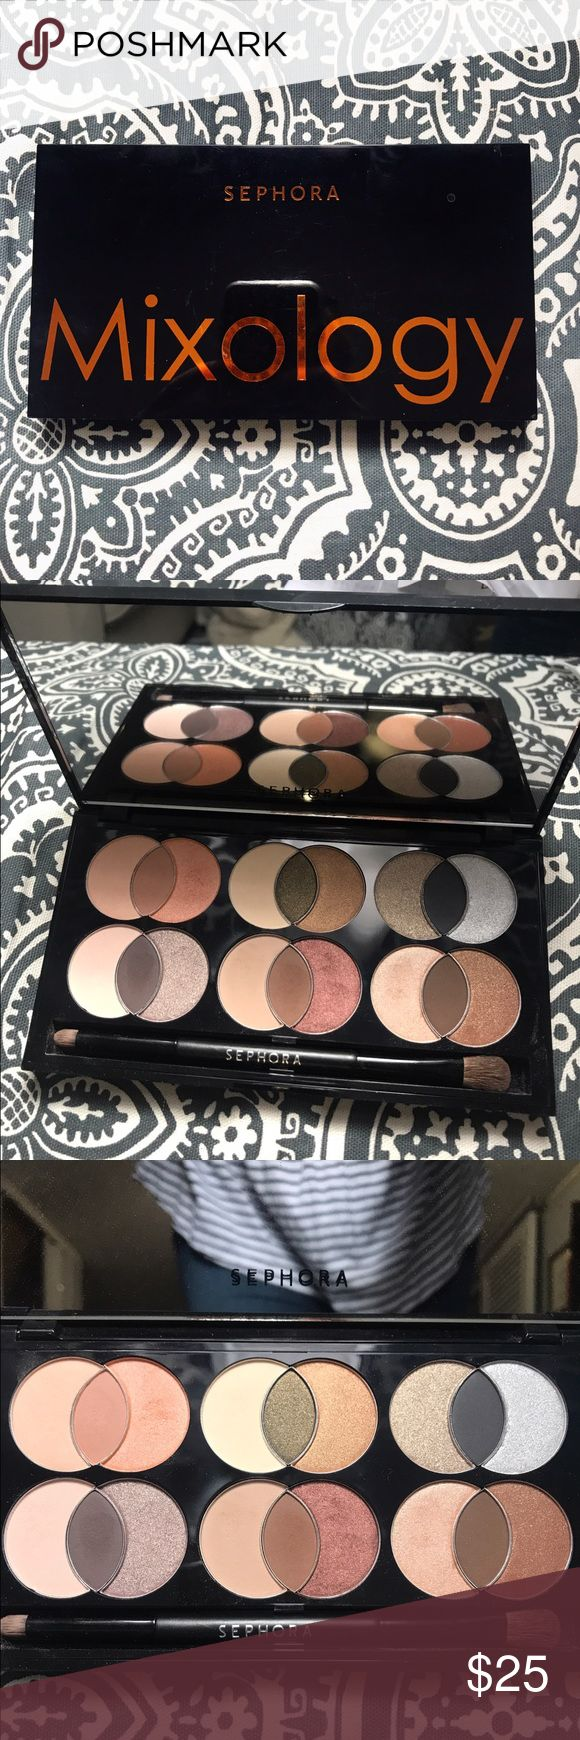 Sephora Mixology Eye Shadow Pallet Sephora Mixology eye shadow pallet! Great pallet that pairs complimentary colors. Shadows have only been swatched with two colors being used a couple of times. Basically brand new and in great condition! Sephora Makeup Eyeshadow